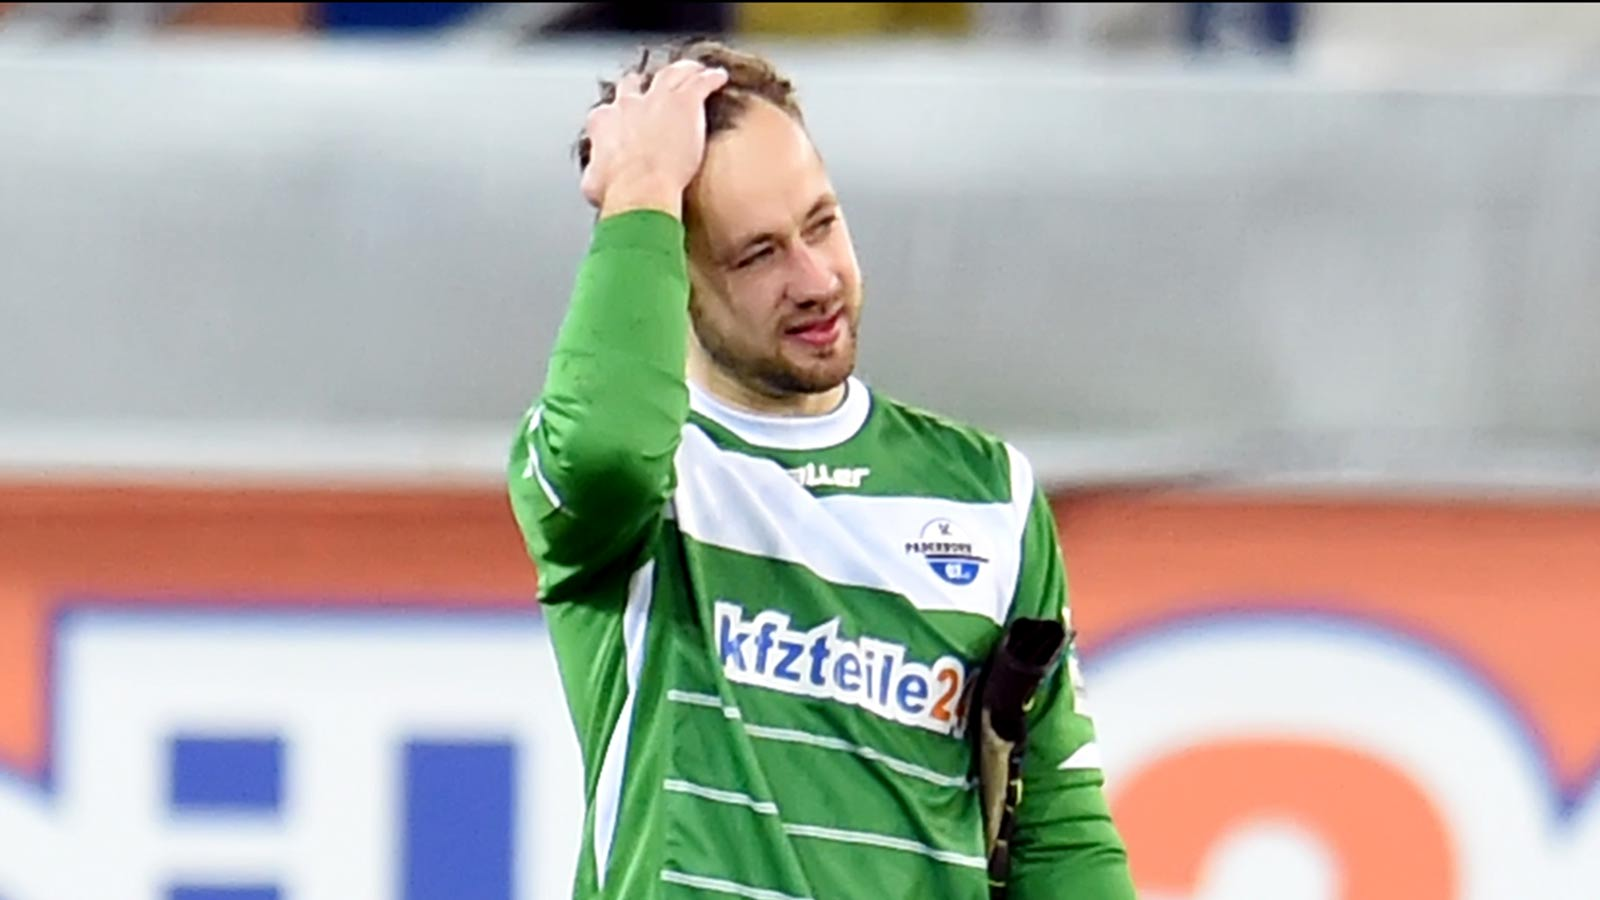 Headshot! Paderborn goalkeeper gets leveled by shot to the face (VIDEO)